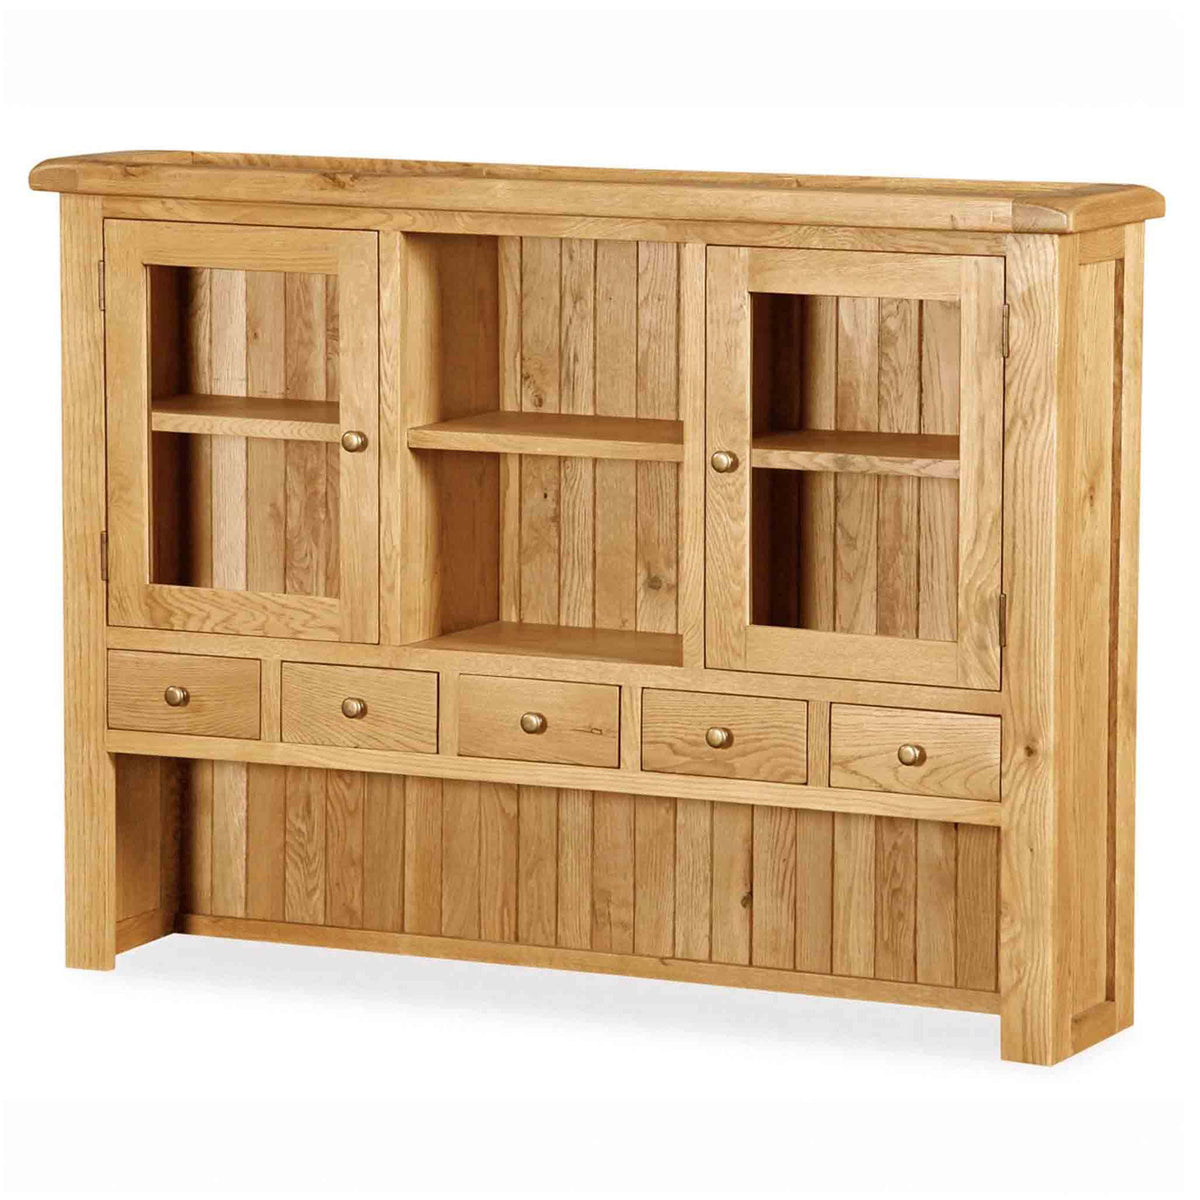 Zelah Large Hutch by Roseland Furniture